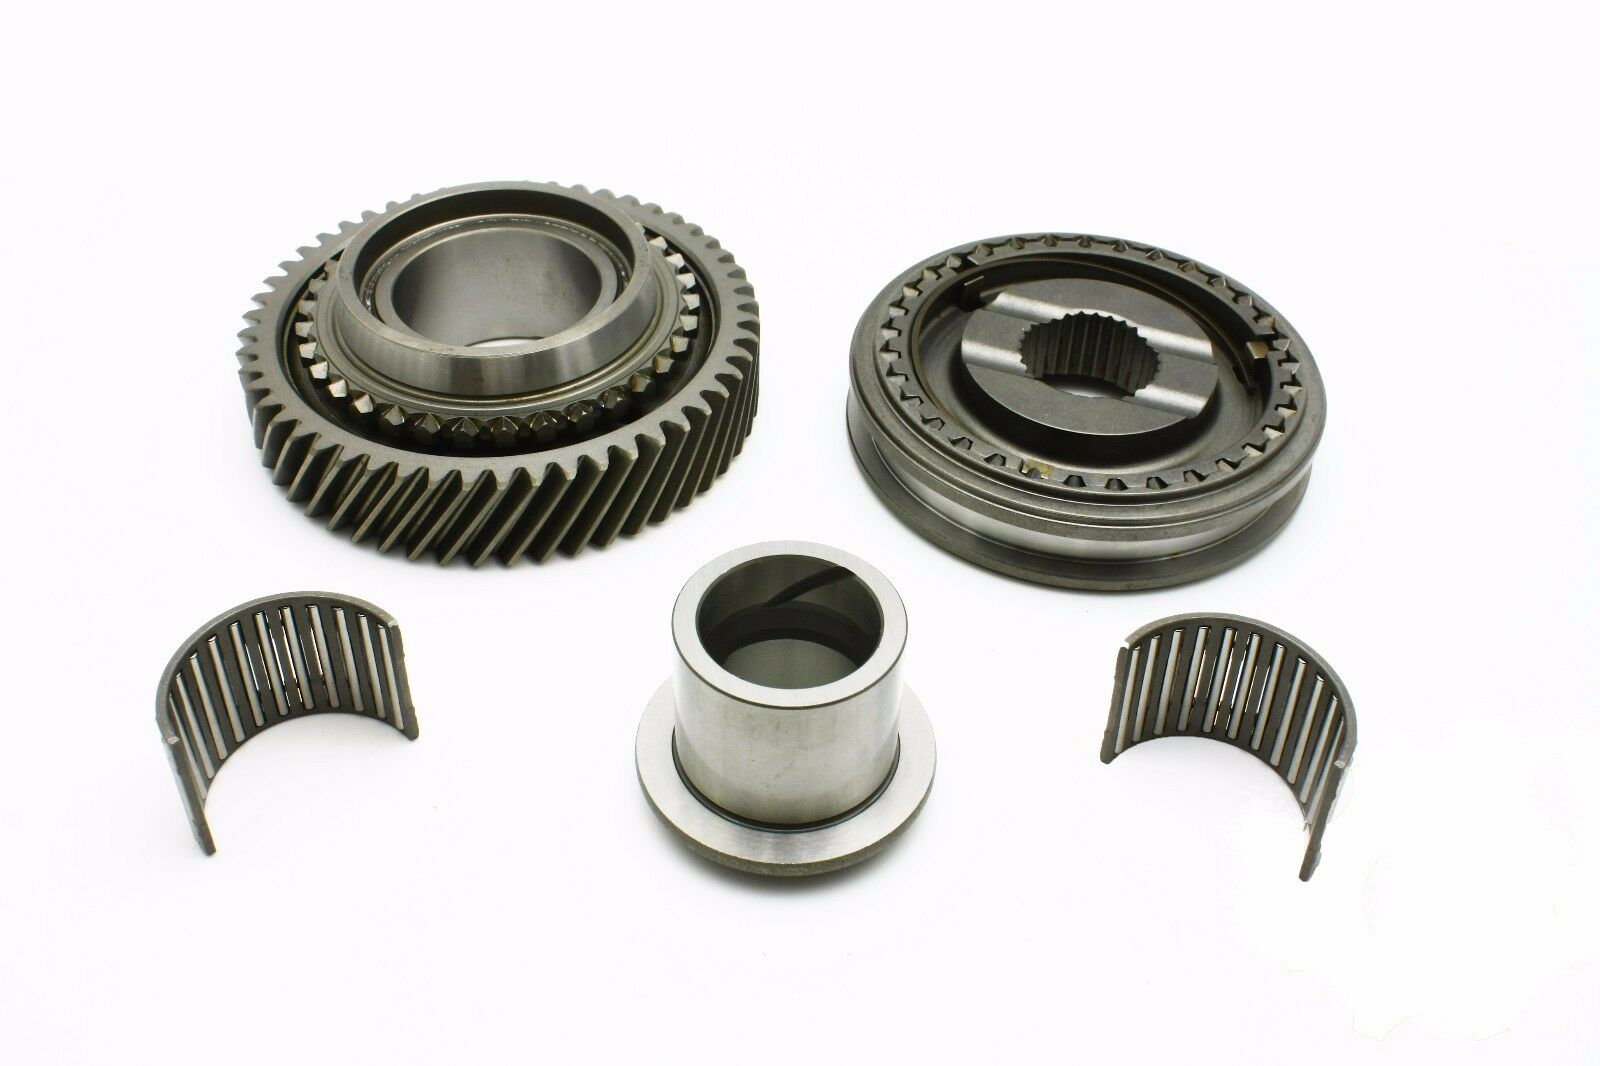 Details about Mazda BT-50 4WD 2 5 & 3 0 CD Gearbox OEM Quality 5th Gear  Repair Kit 2006-2010